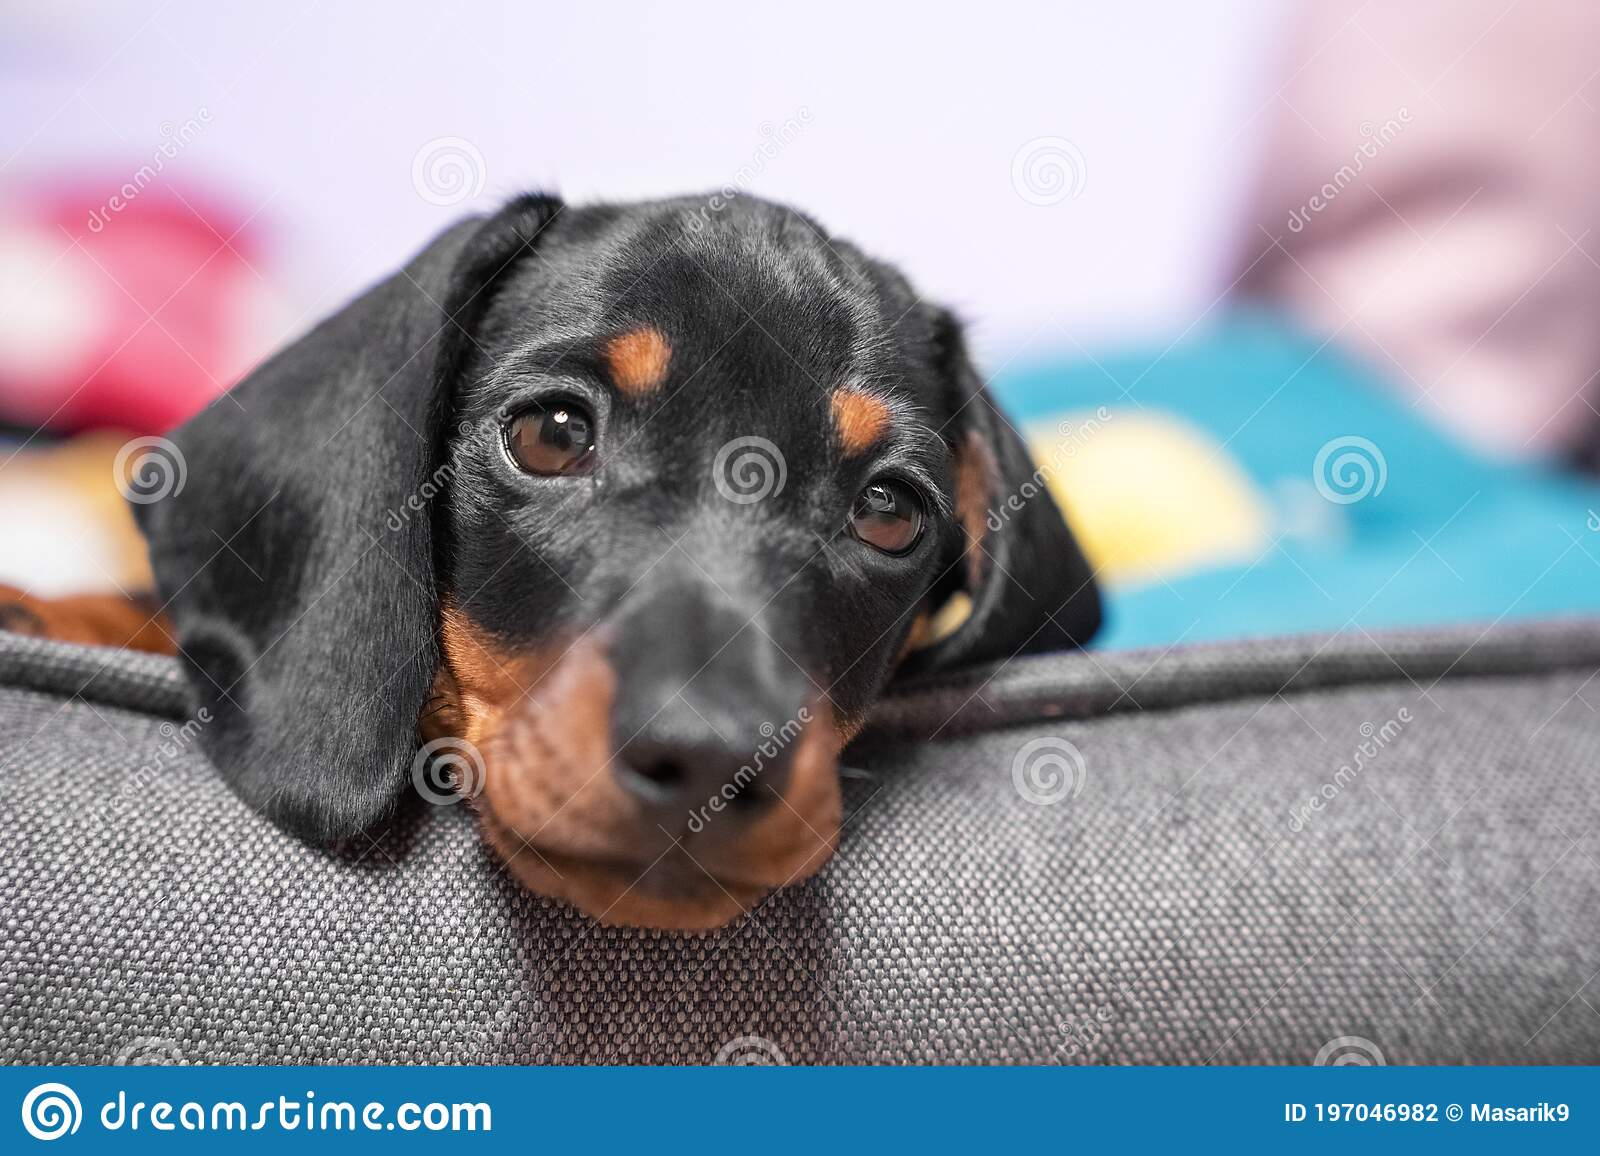 Portrait Of Adorable Sad Dachshund Puppy Lying With Its Head On Side Of Pet Bed Front View Close Up Tired Baby Dog Stock Photo Image Of Comfort Pedigree 197046982